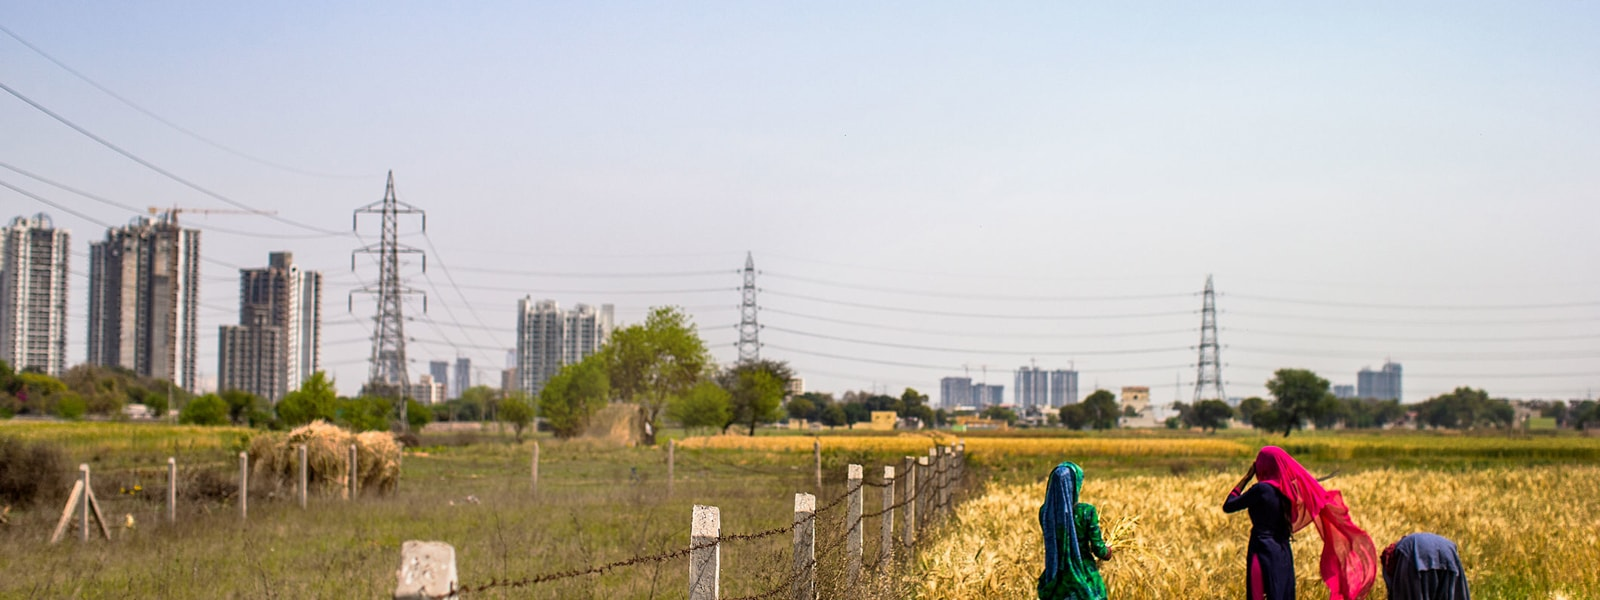 Farm workers harvest wheat crop by hand in fenced-off field with power lines and city buildings visible in the distance.